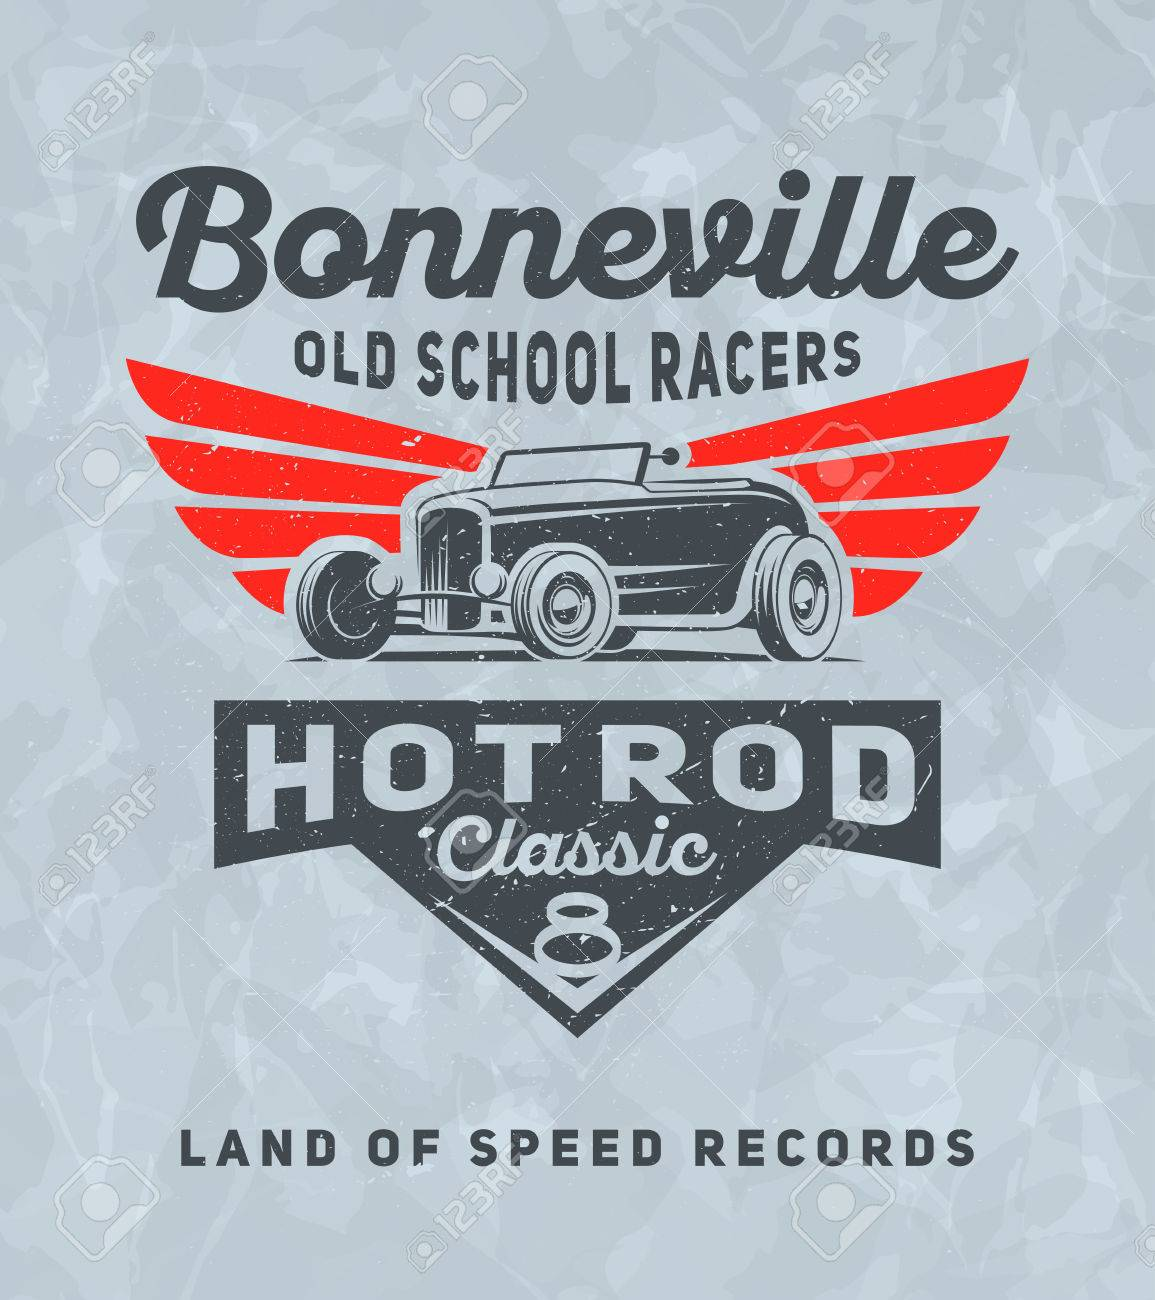 Vintage american hot rod car for printing with grunge texture. Vector old school Bonneville race poster. T-shirt printing design. Retro hot-rod car poster. - 69774087